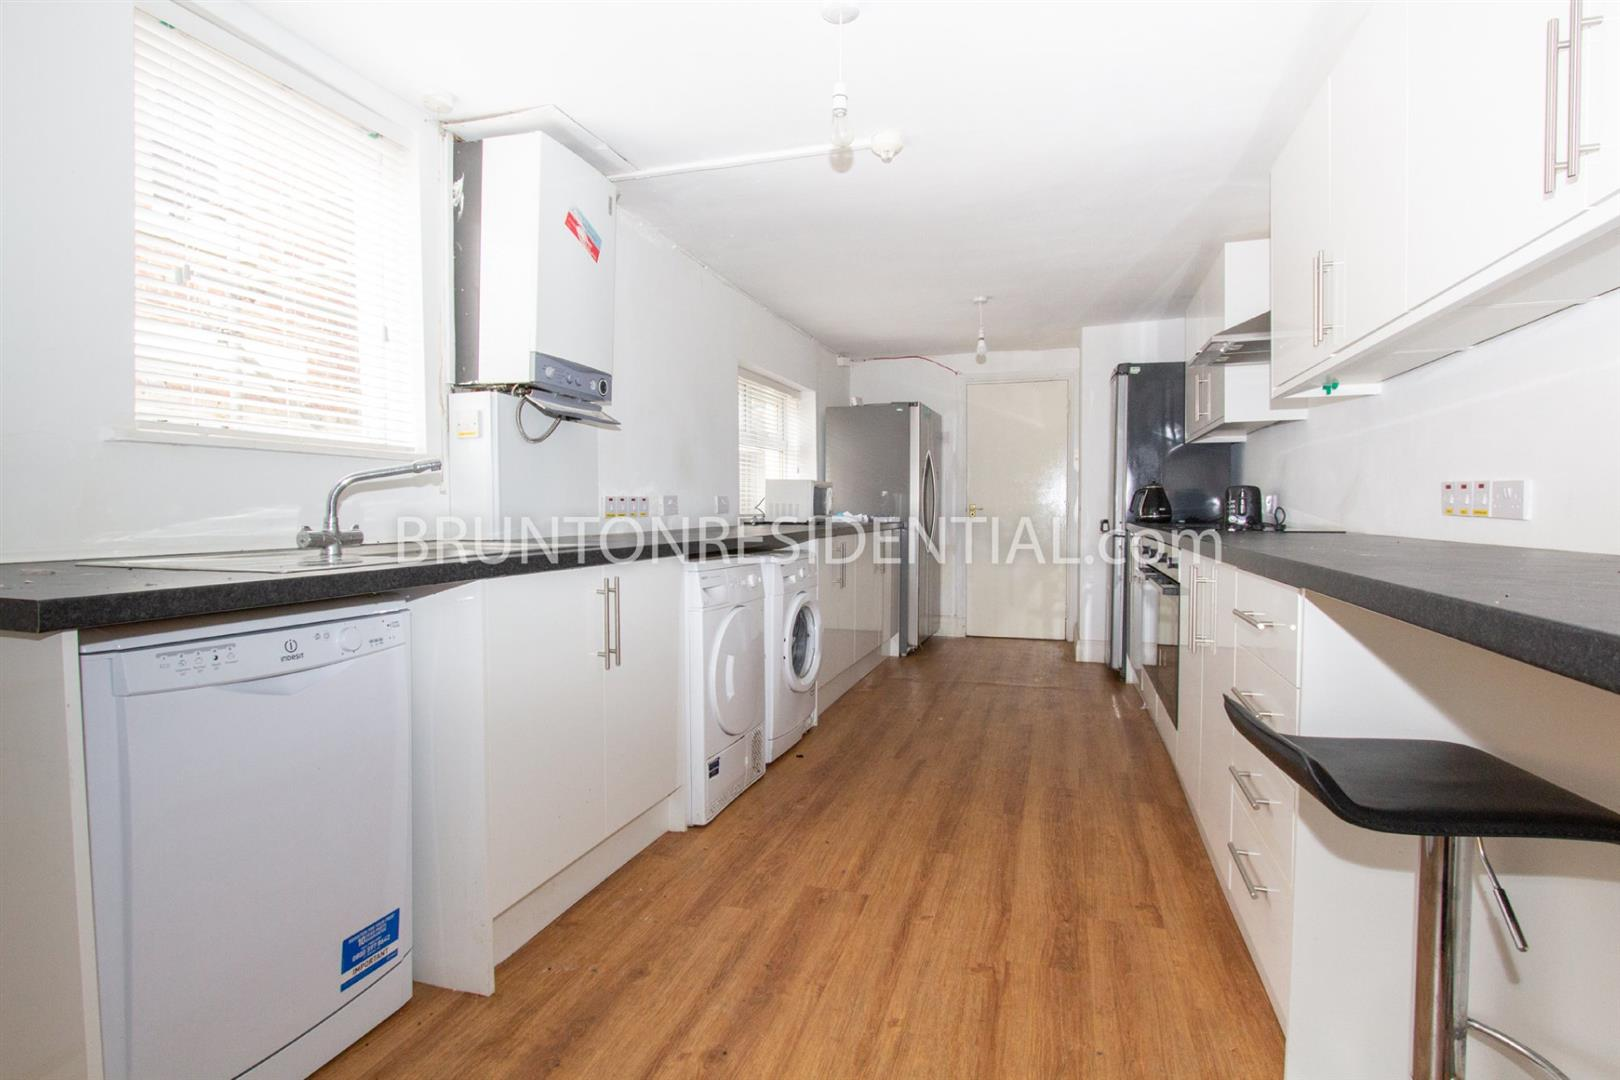 7 bed terraced house to rent in Newcastle Upon Tyne, NE2 2NB - Property Image 1